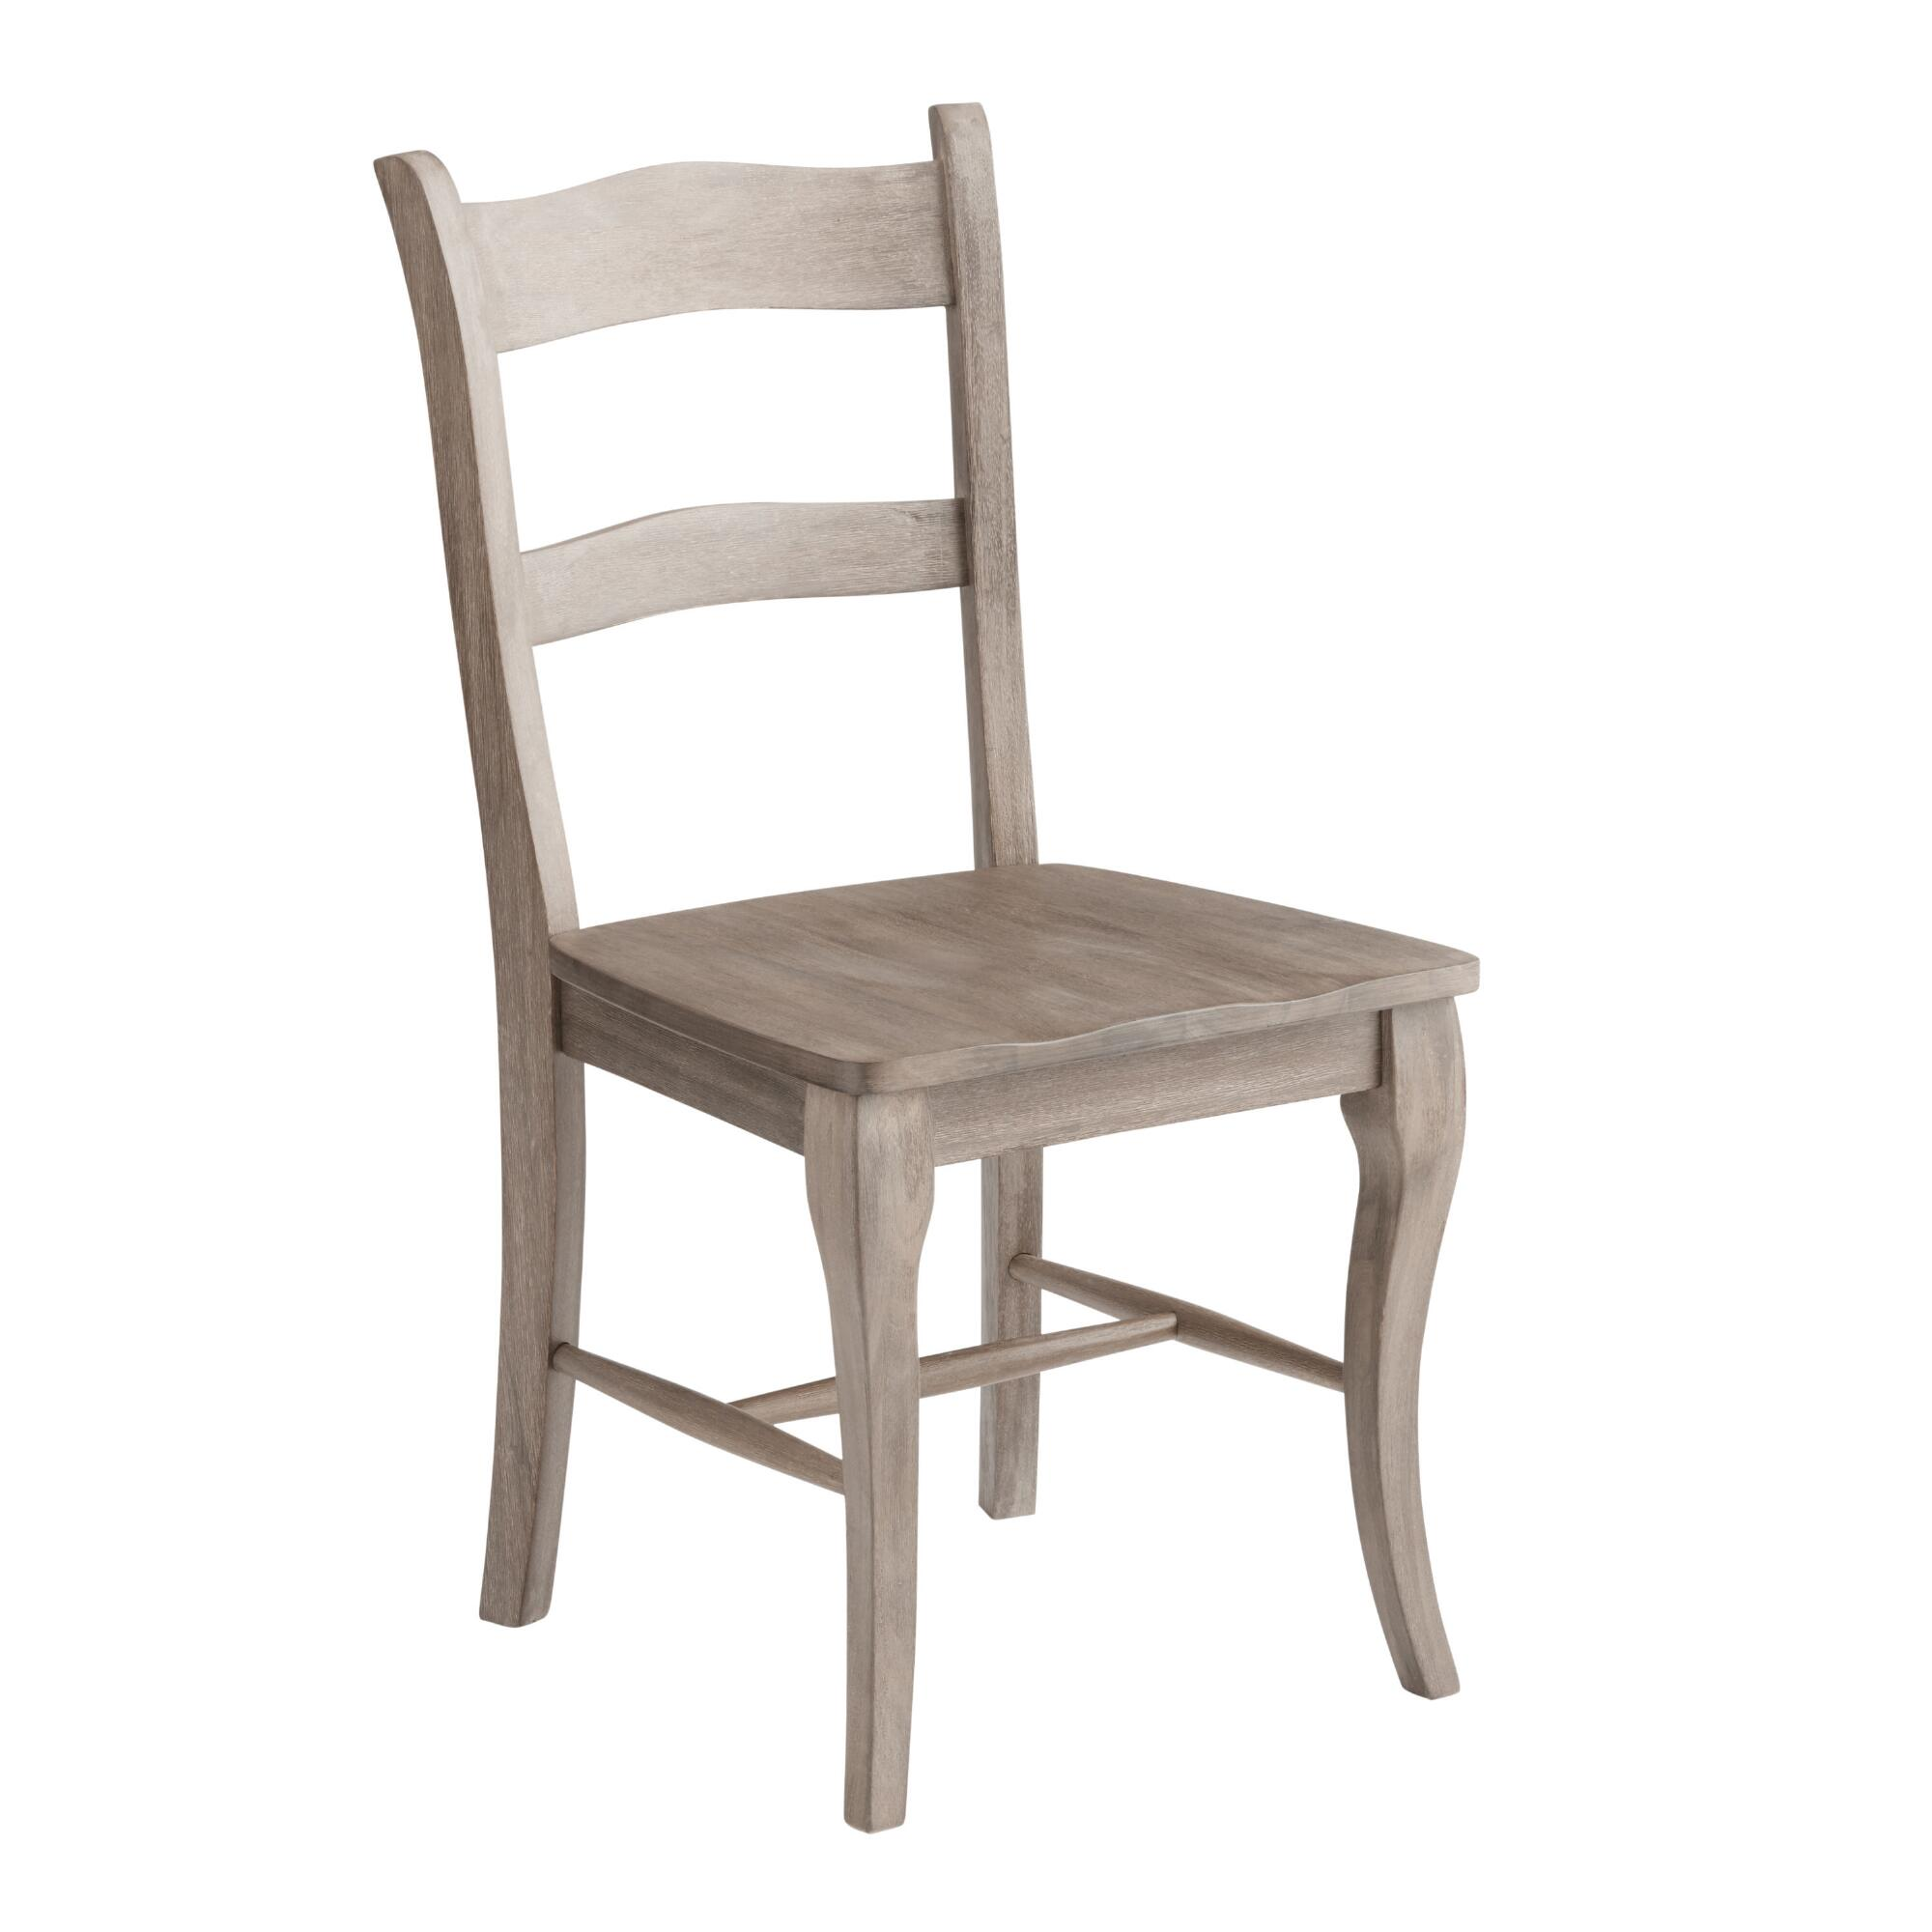 Dining Chairs Kitchen Chairs: Weathered Gray Wood Jozy Dining Chairs Set Of 2